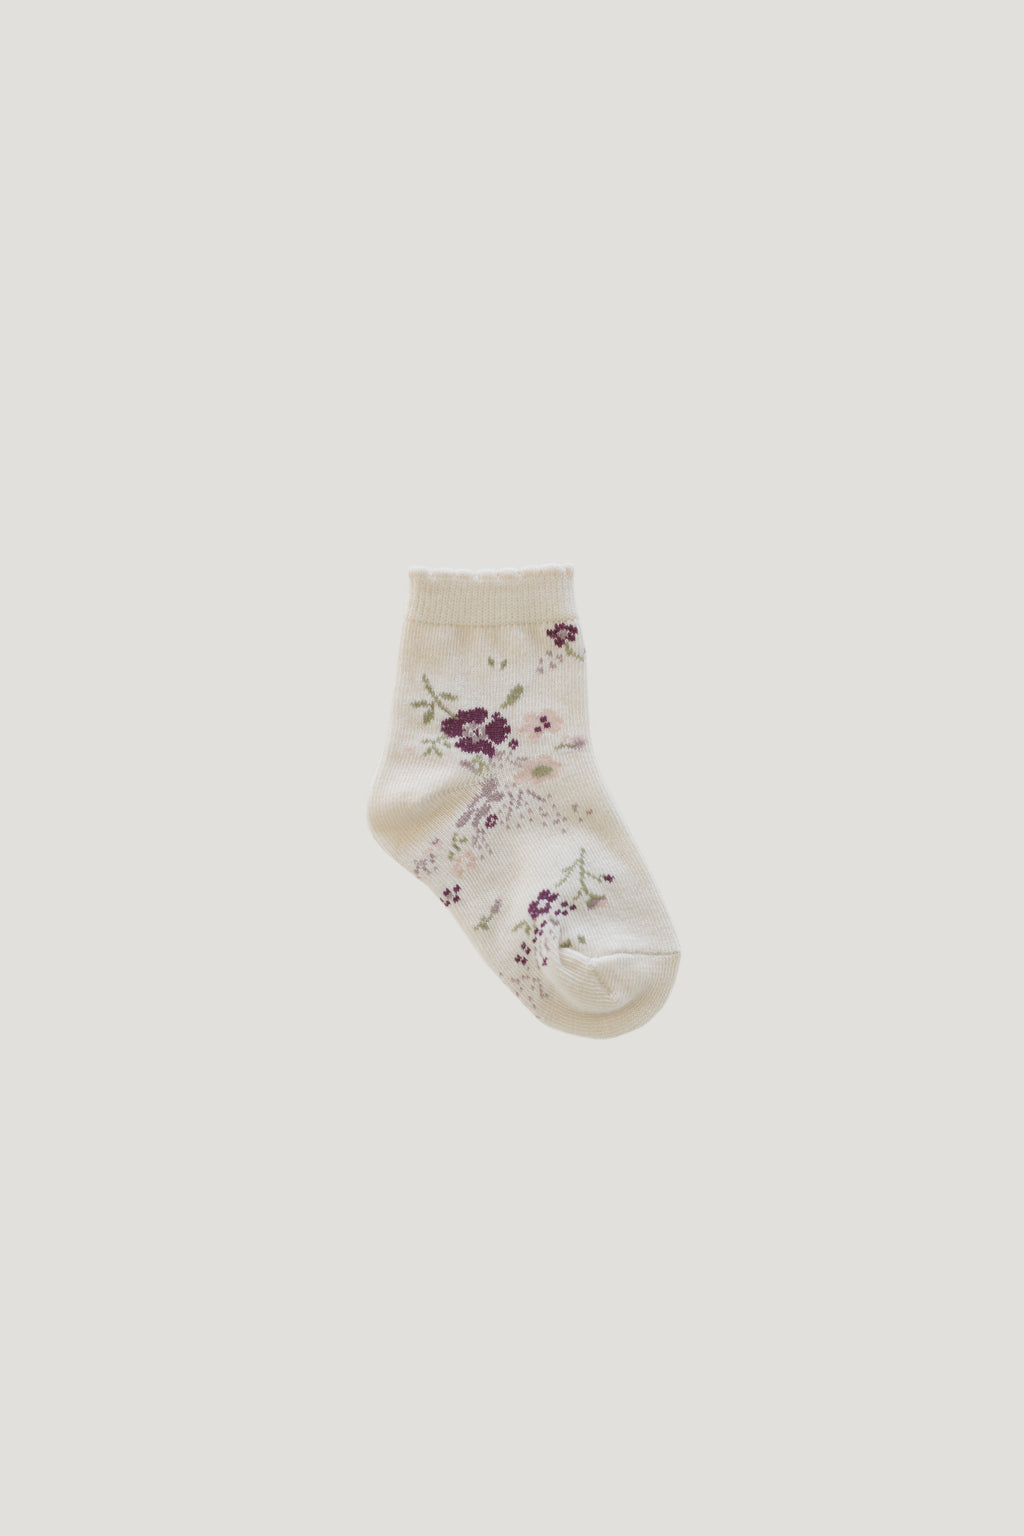 Socks - Sweet William Floral